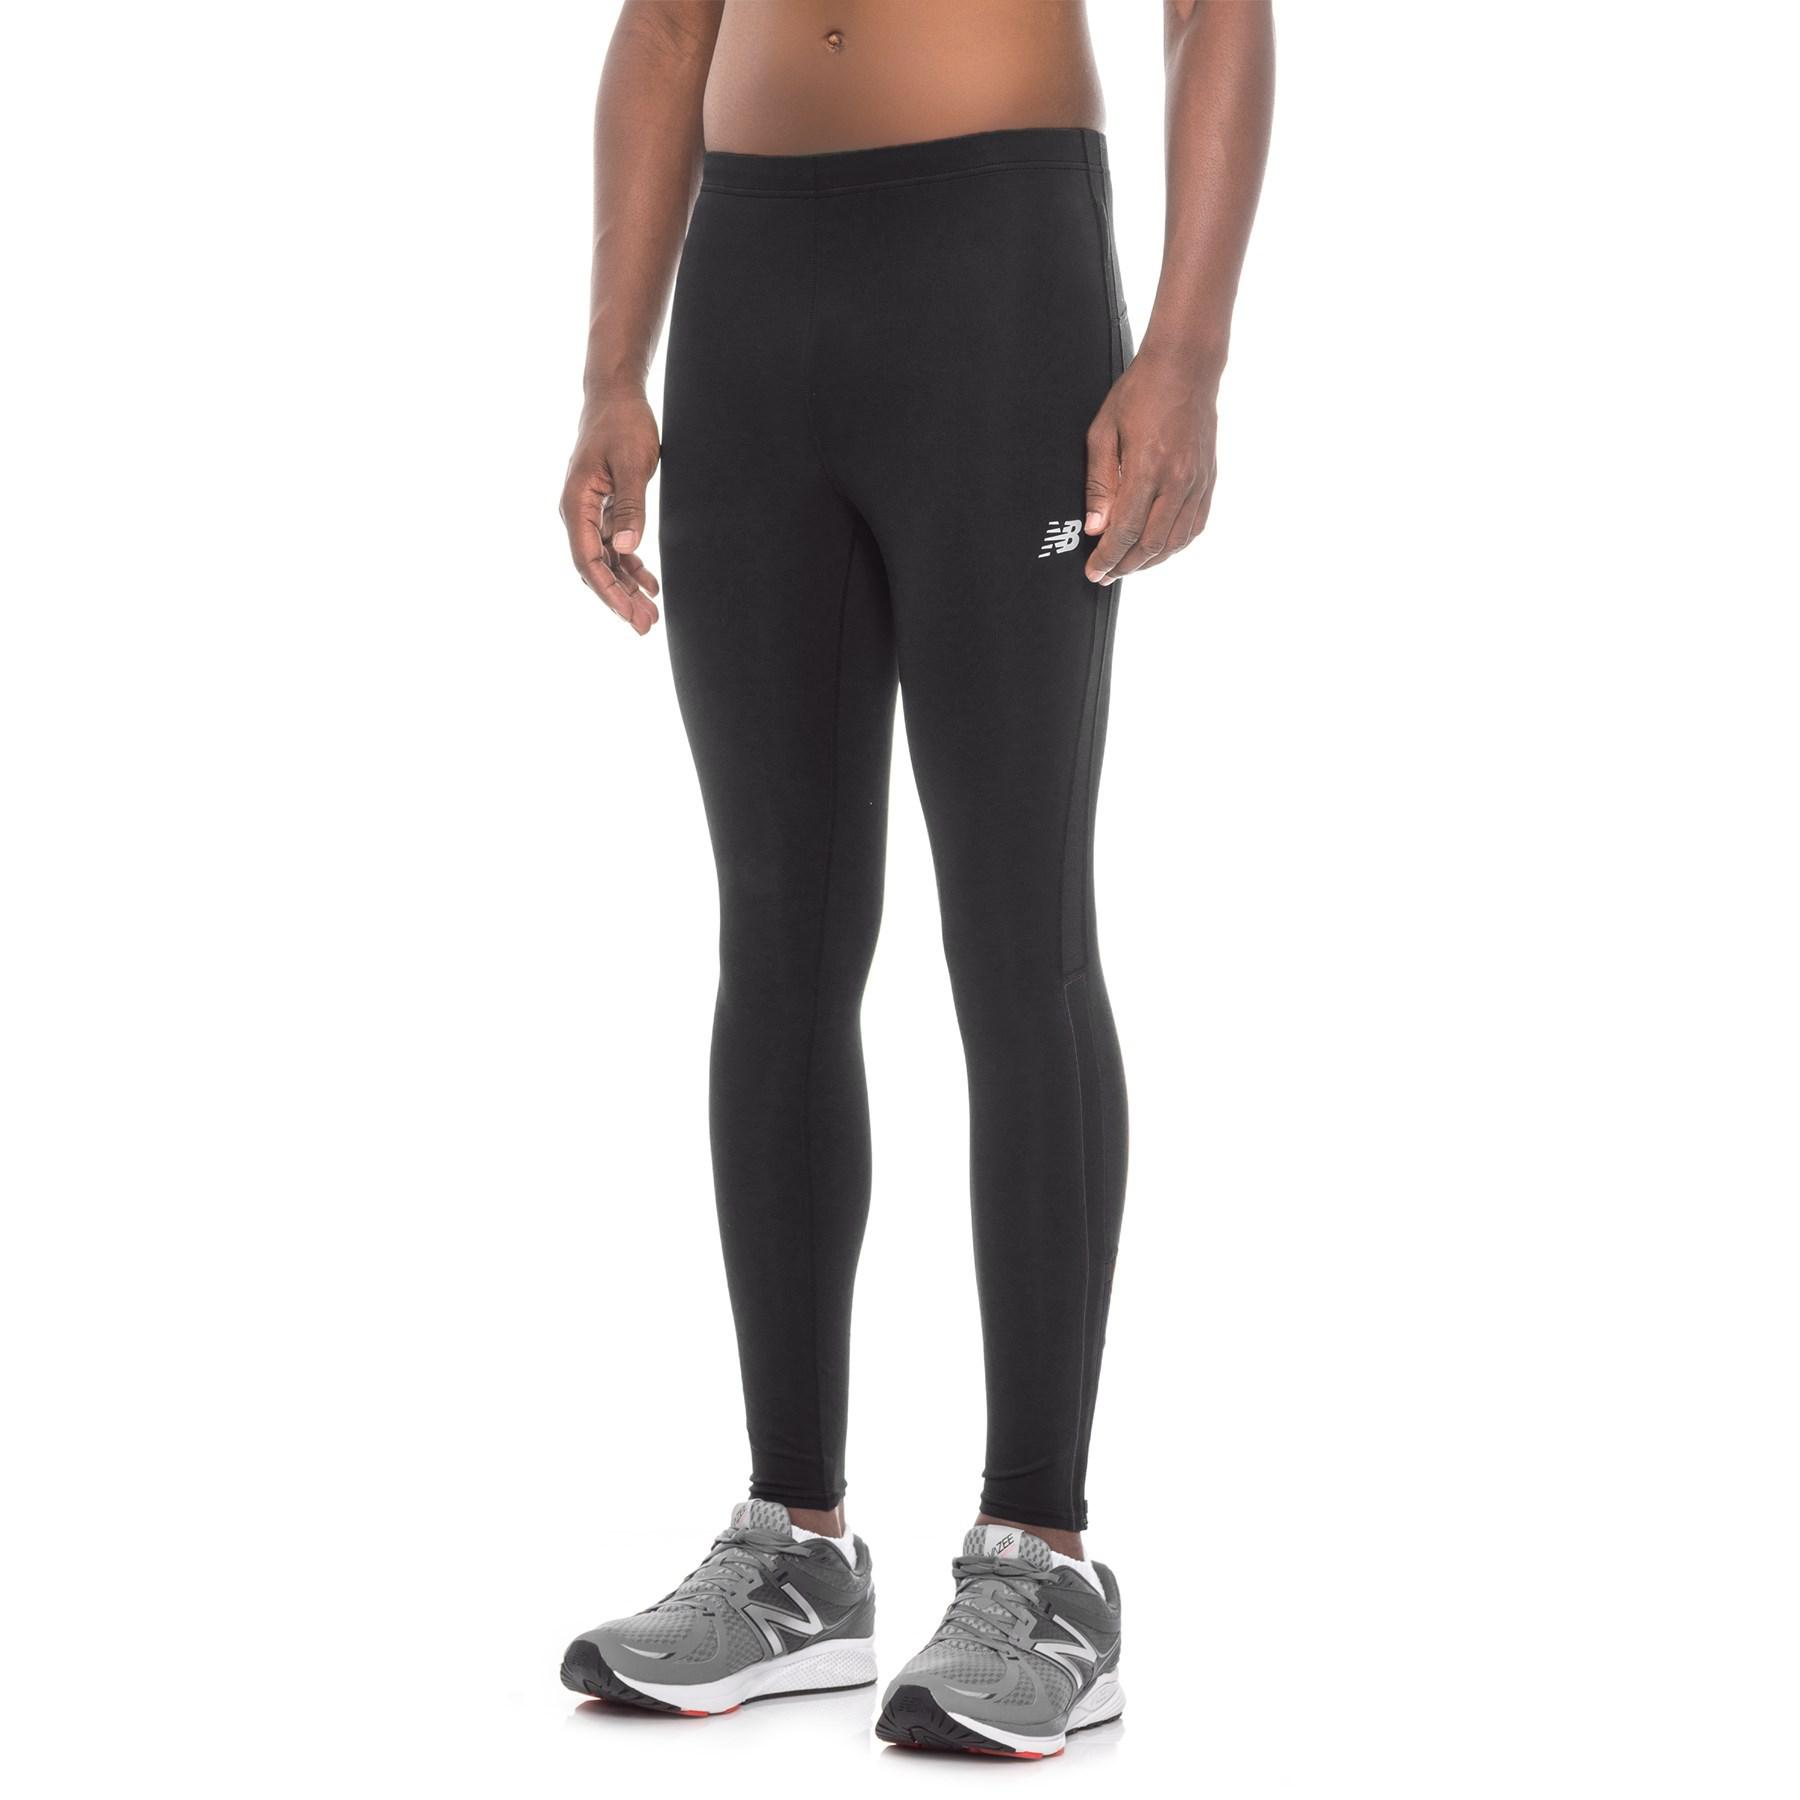 on sale c4e8a e900b Lyst - New Balance Accelerate Running Tights (for Men) in Black for Men